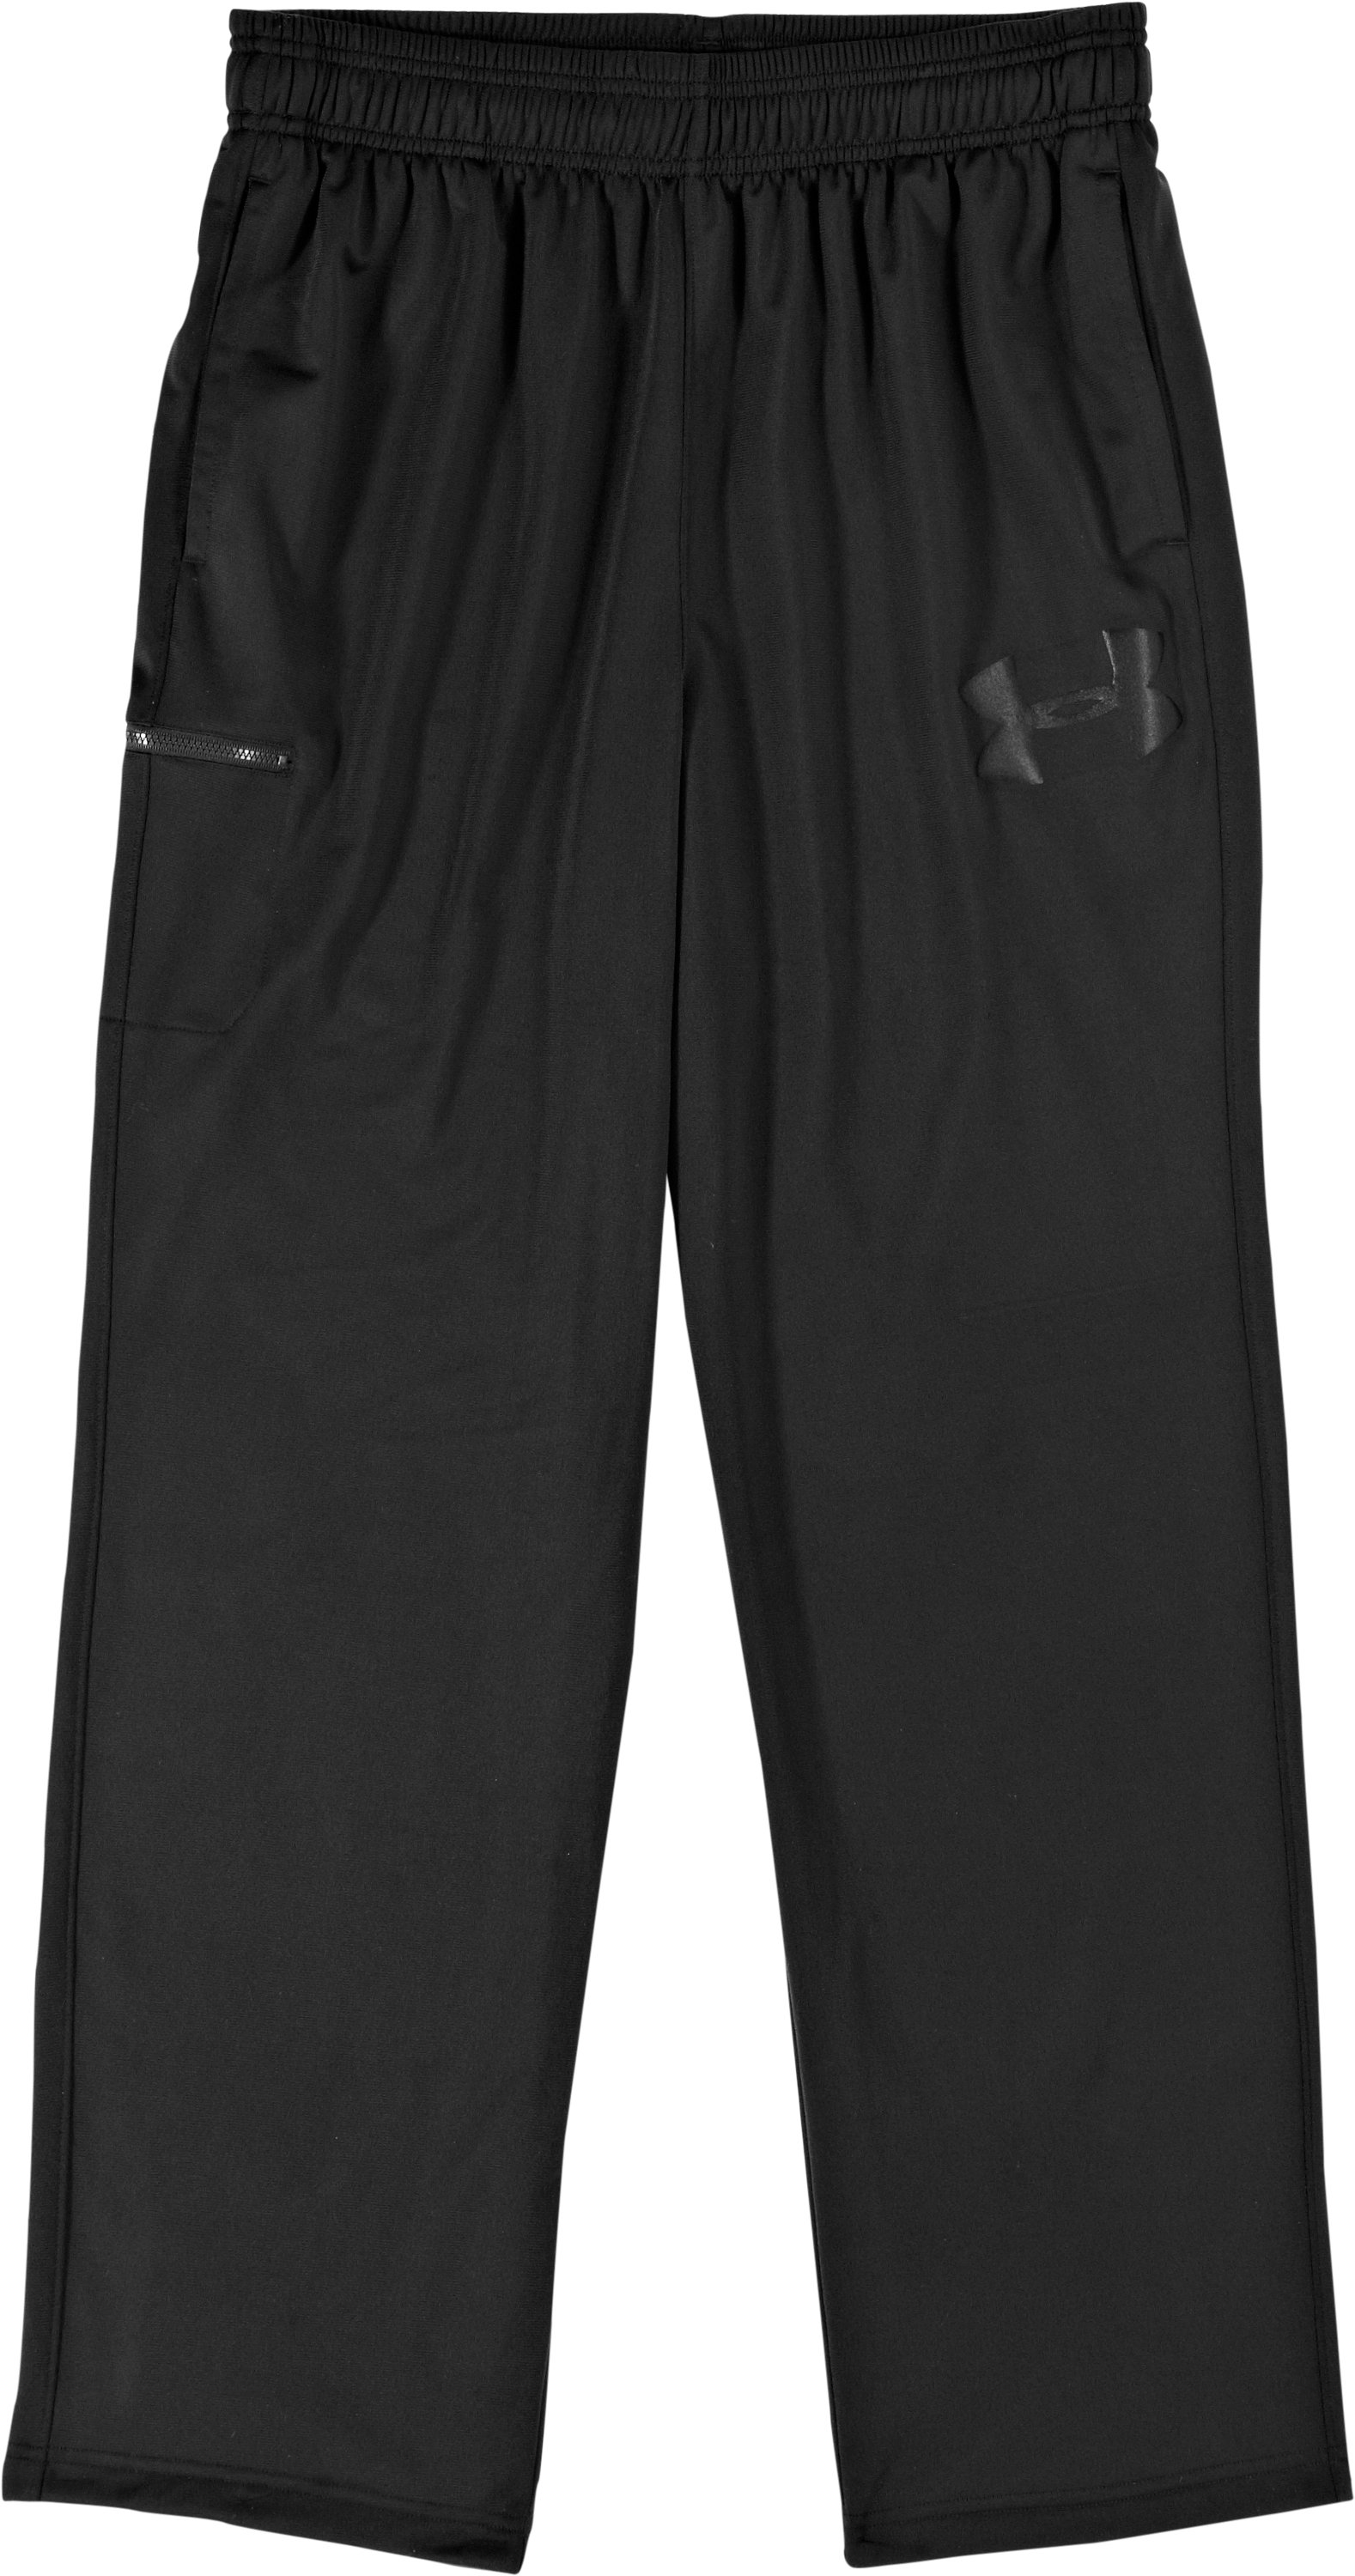 Men's UA Flossnit Warm-Up Pants, Black , Laydown